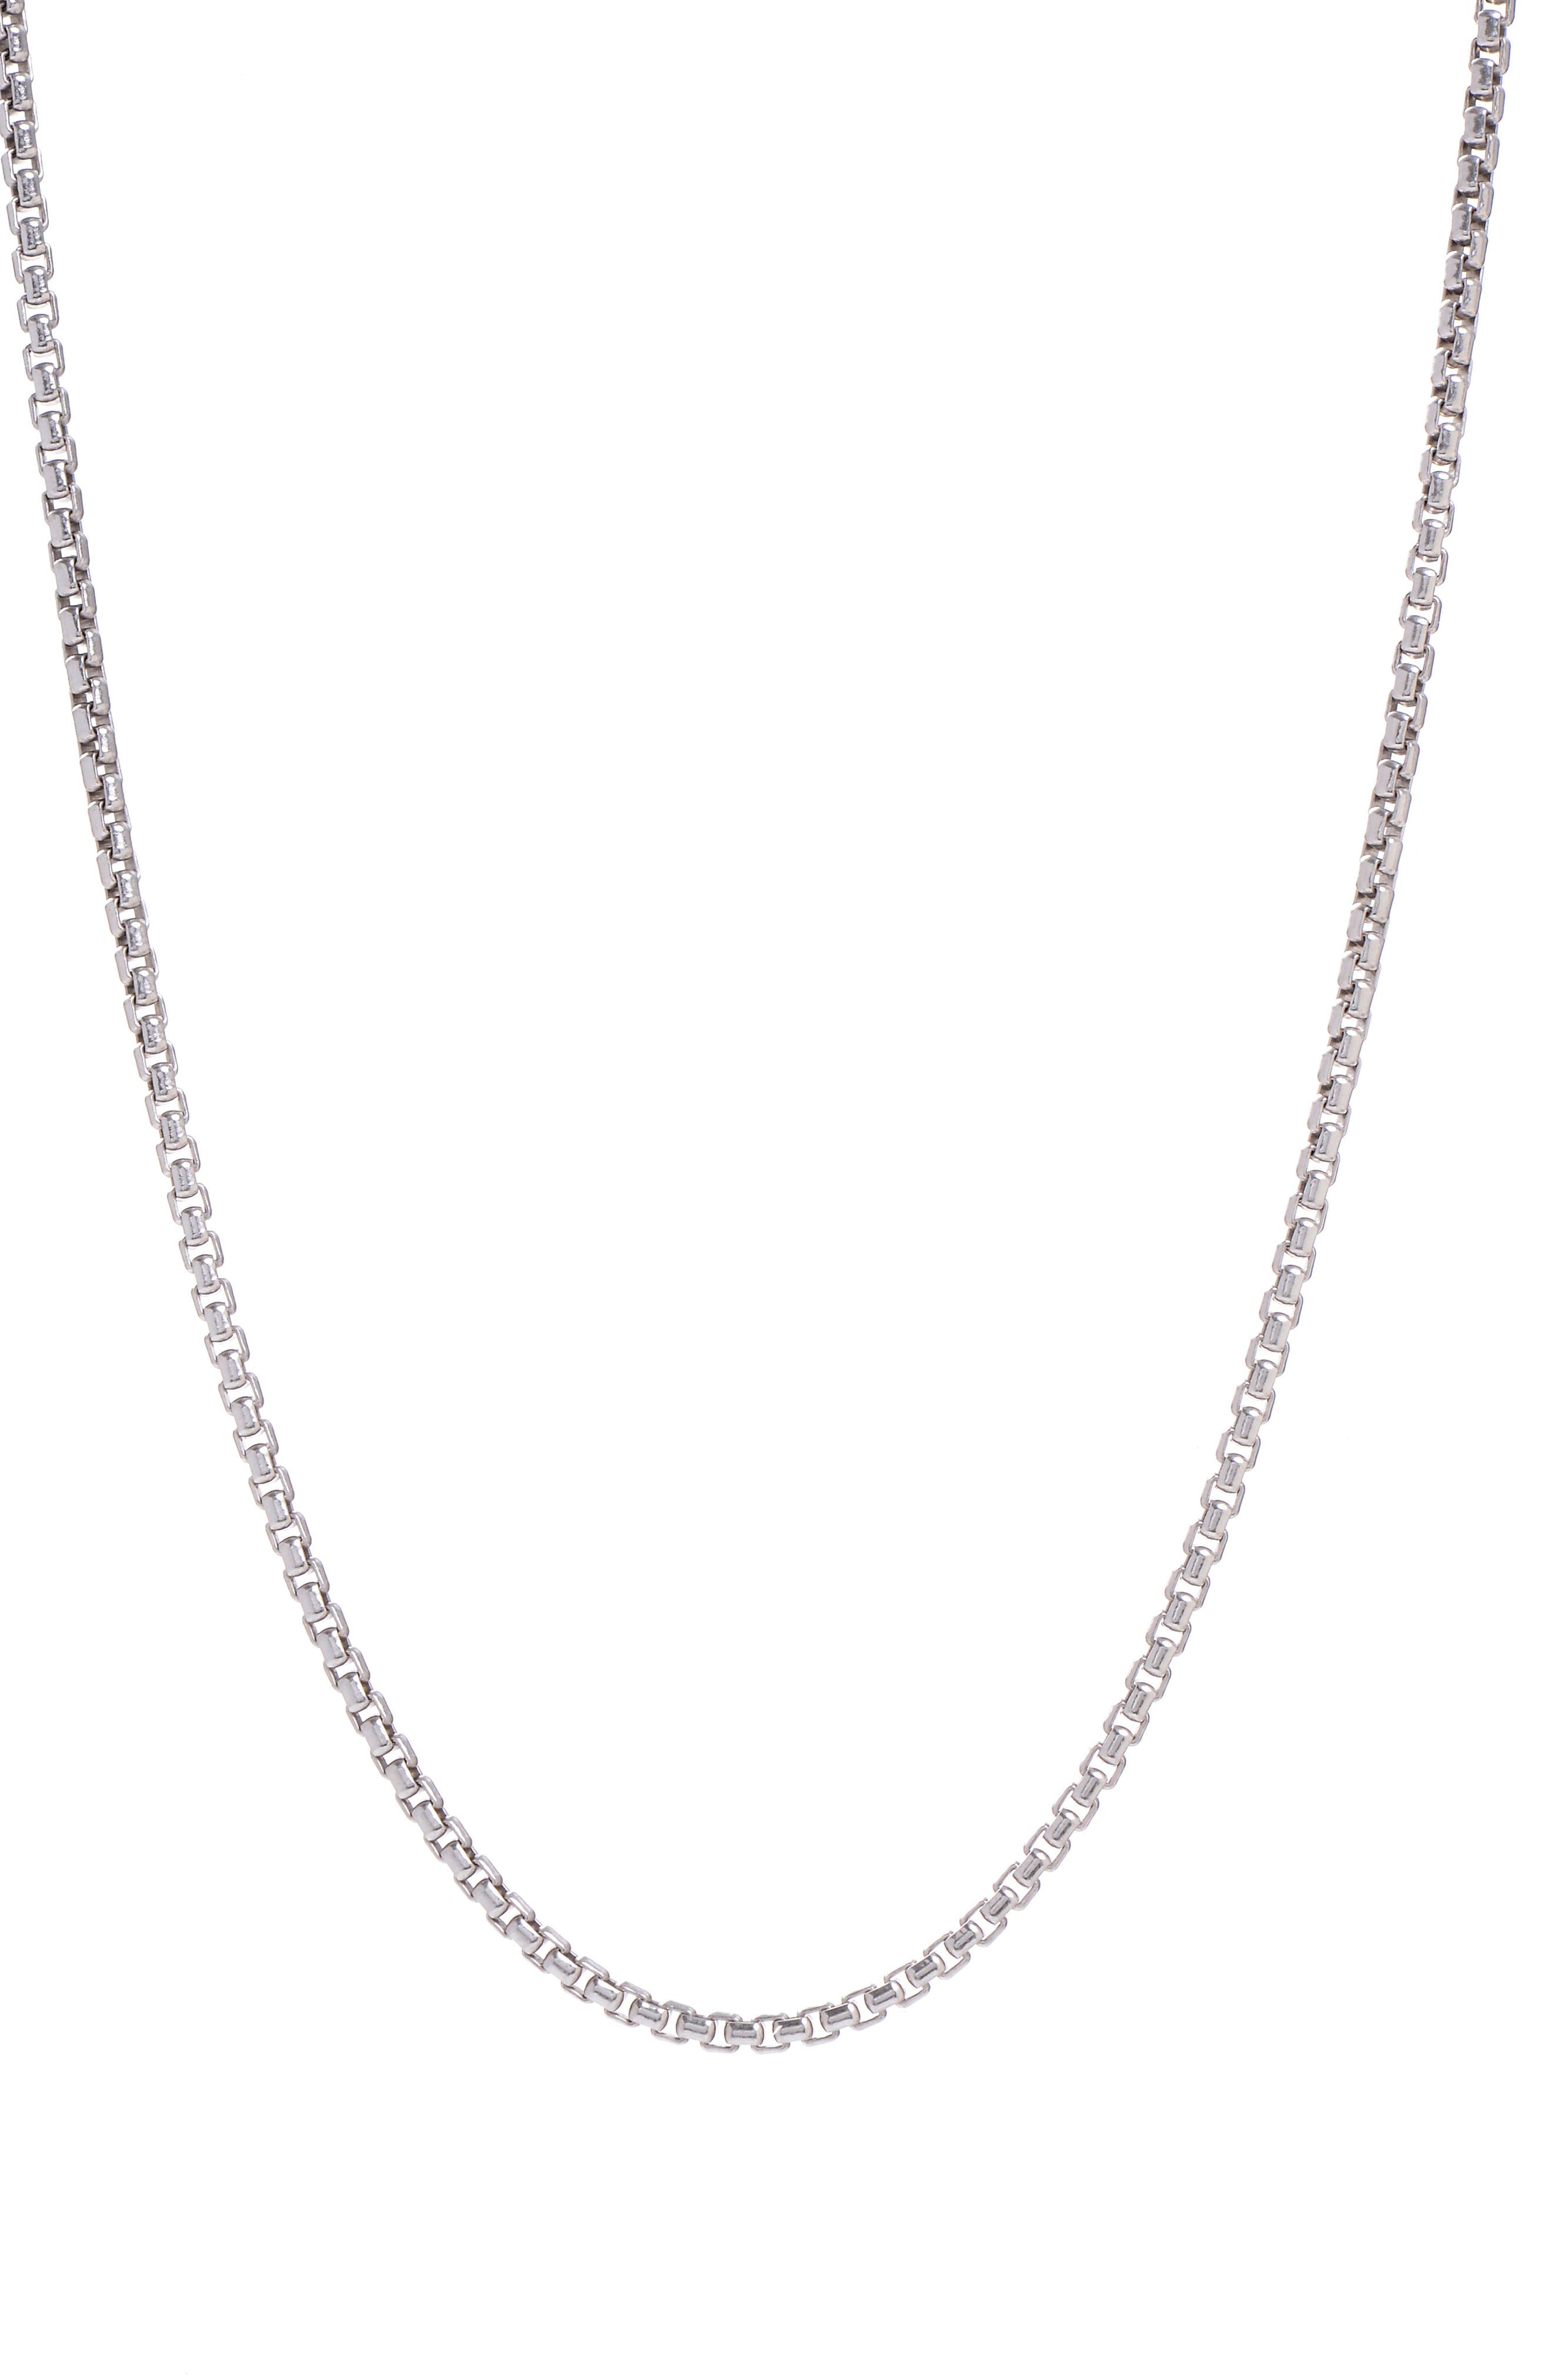 Box Chain Necklace,                         Main,                         color, Silver